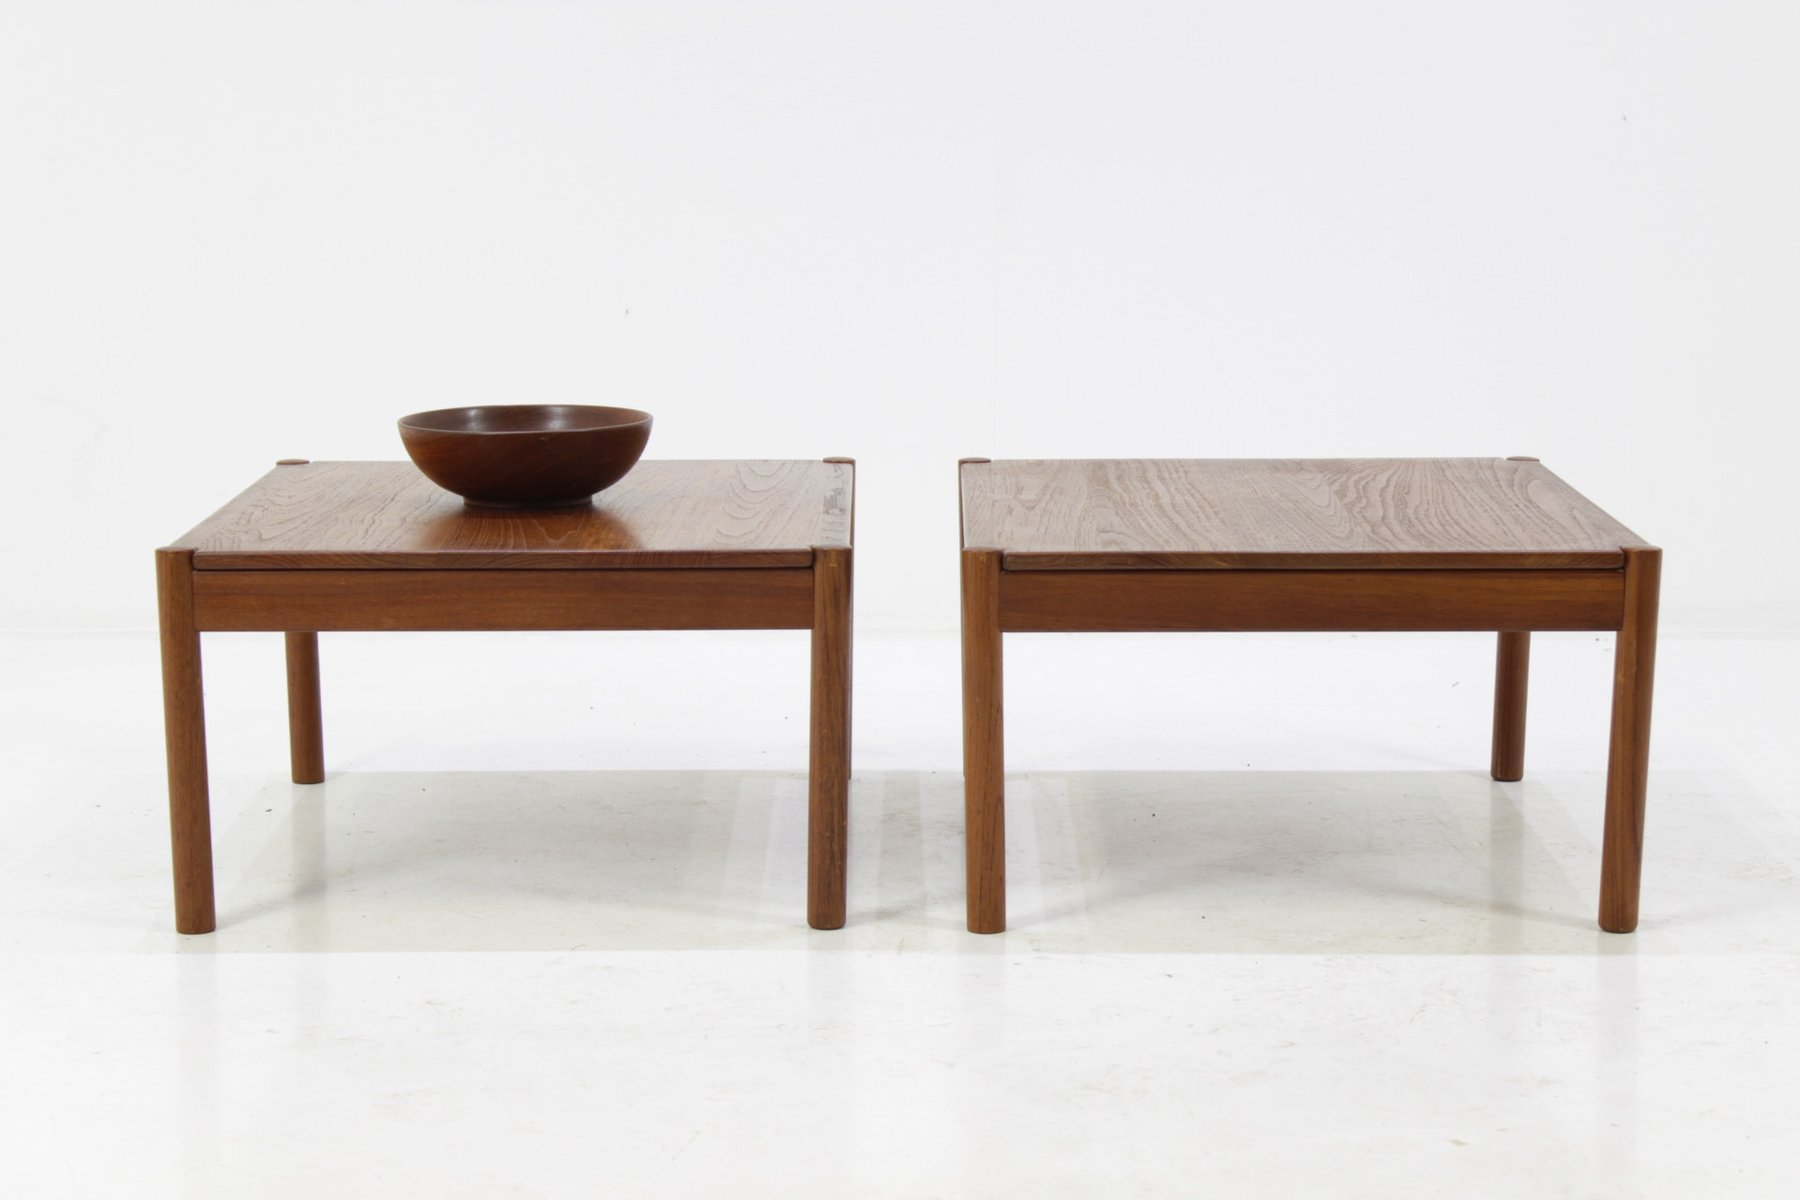 Solid teak coffee tables by magnus olesen for durum 1960s set of solid teak coffee tables by magnus olesen for durum 1960s set of 2 geotapseo Gallery